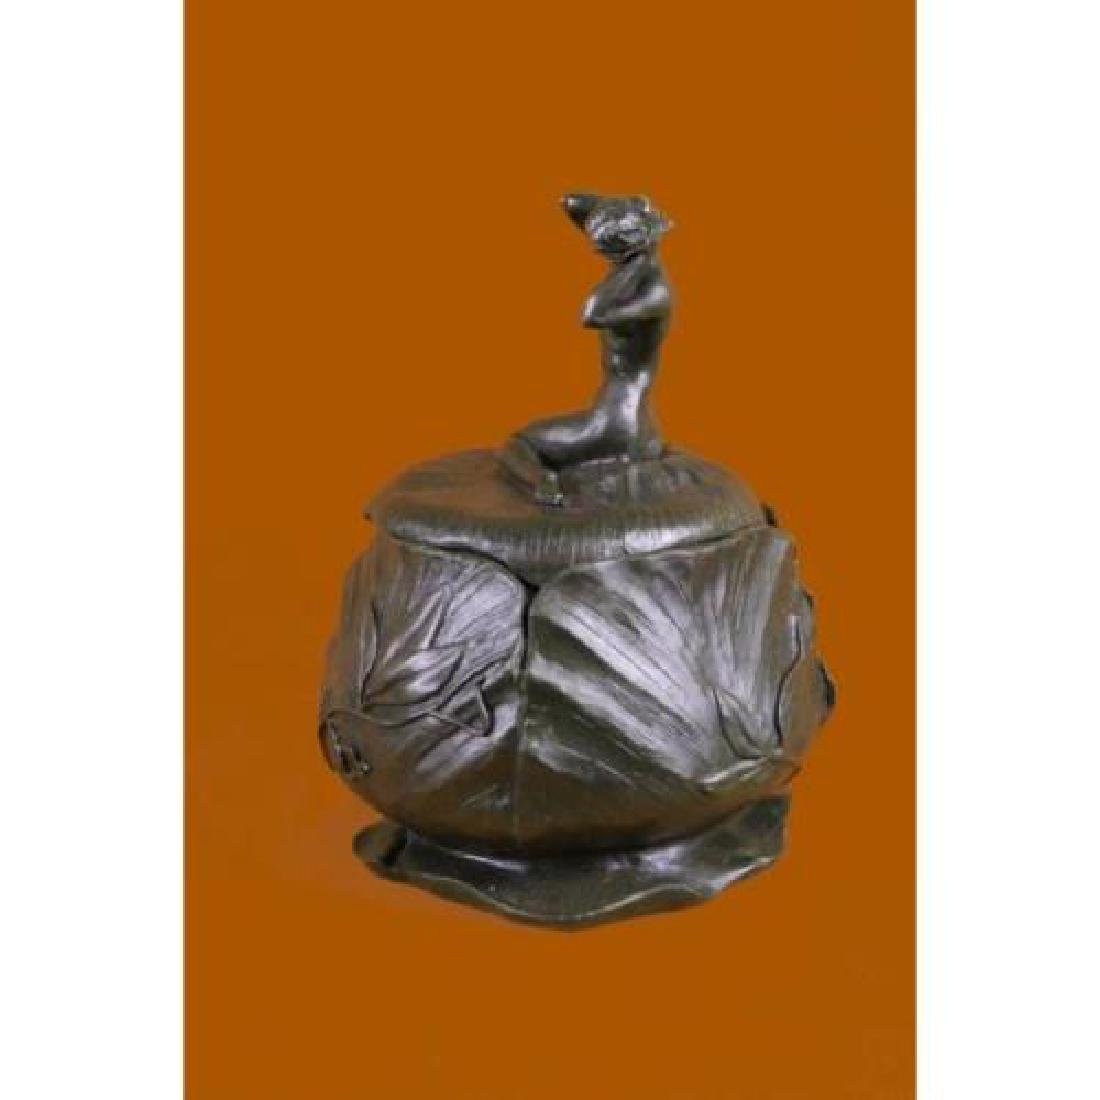 Bowl or Jewelry Box With Lid Bronze Sculpture - 5